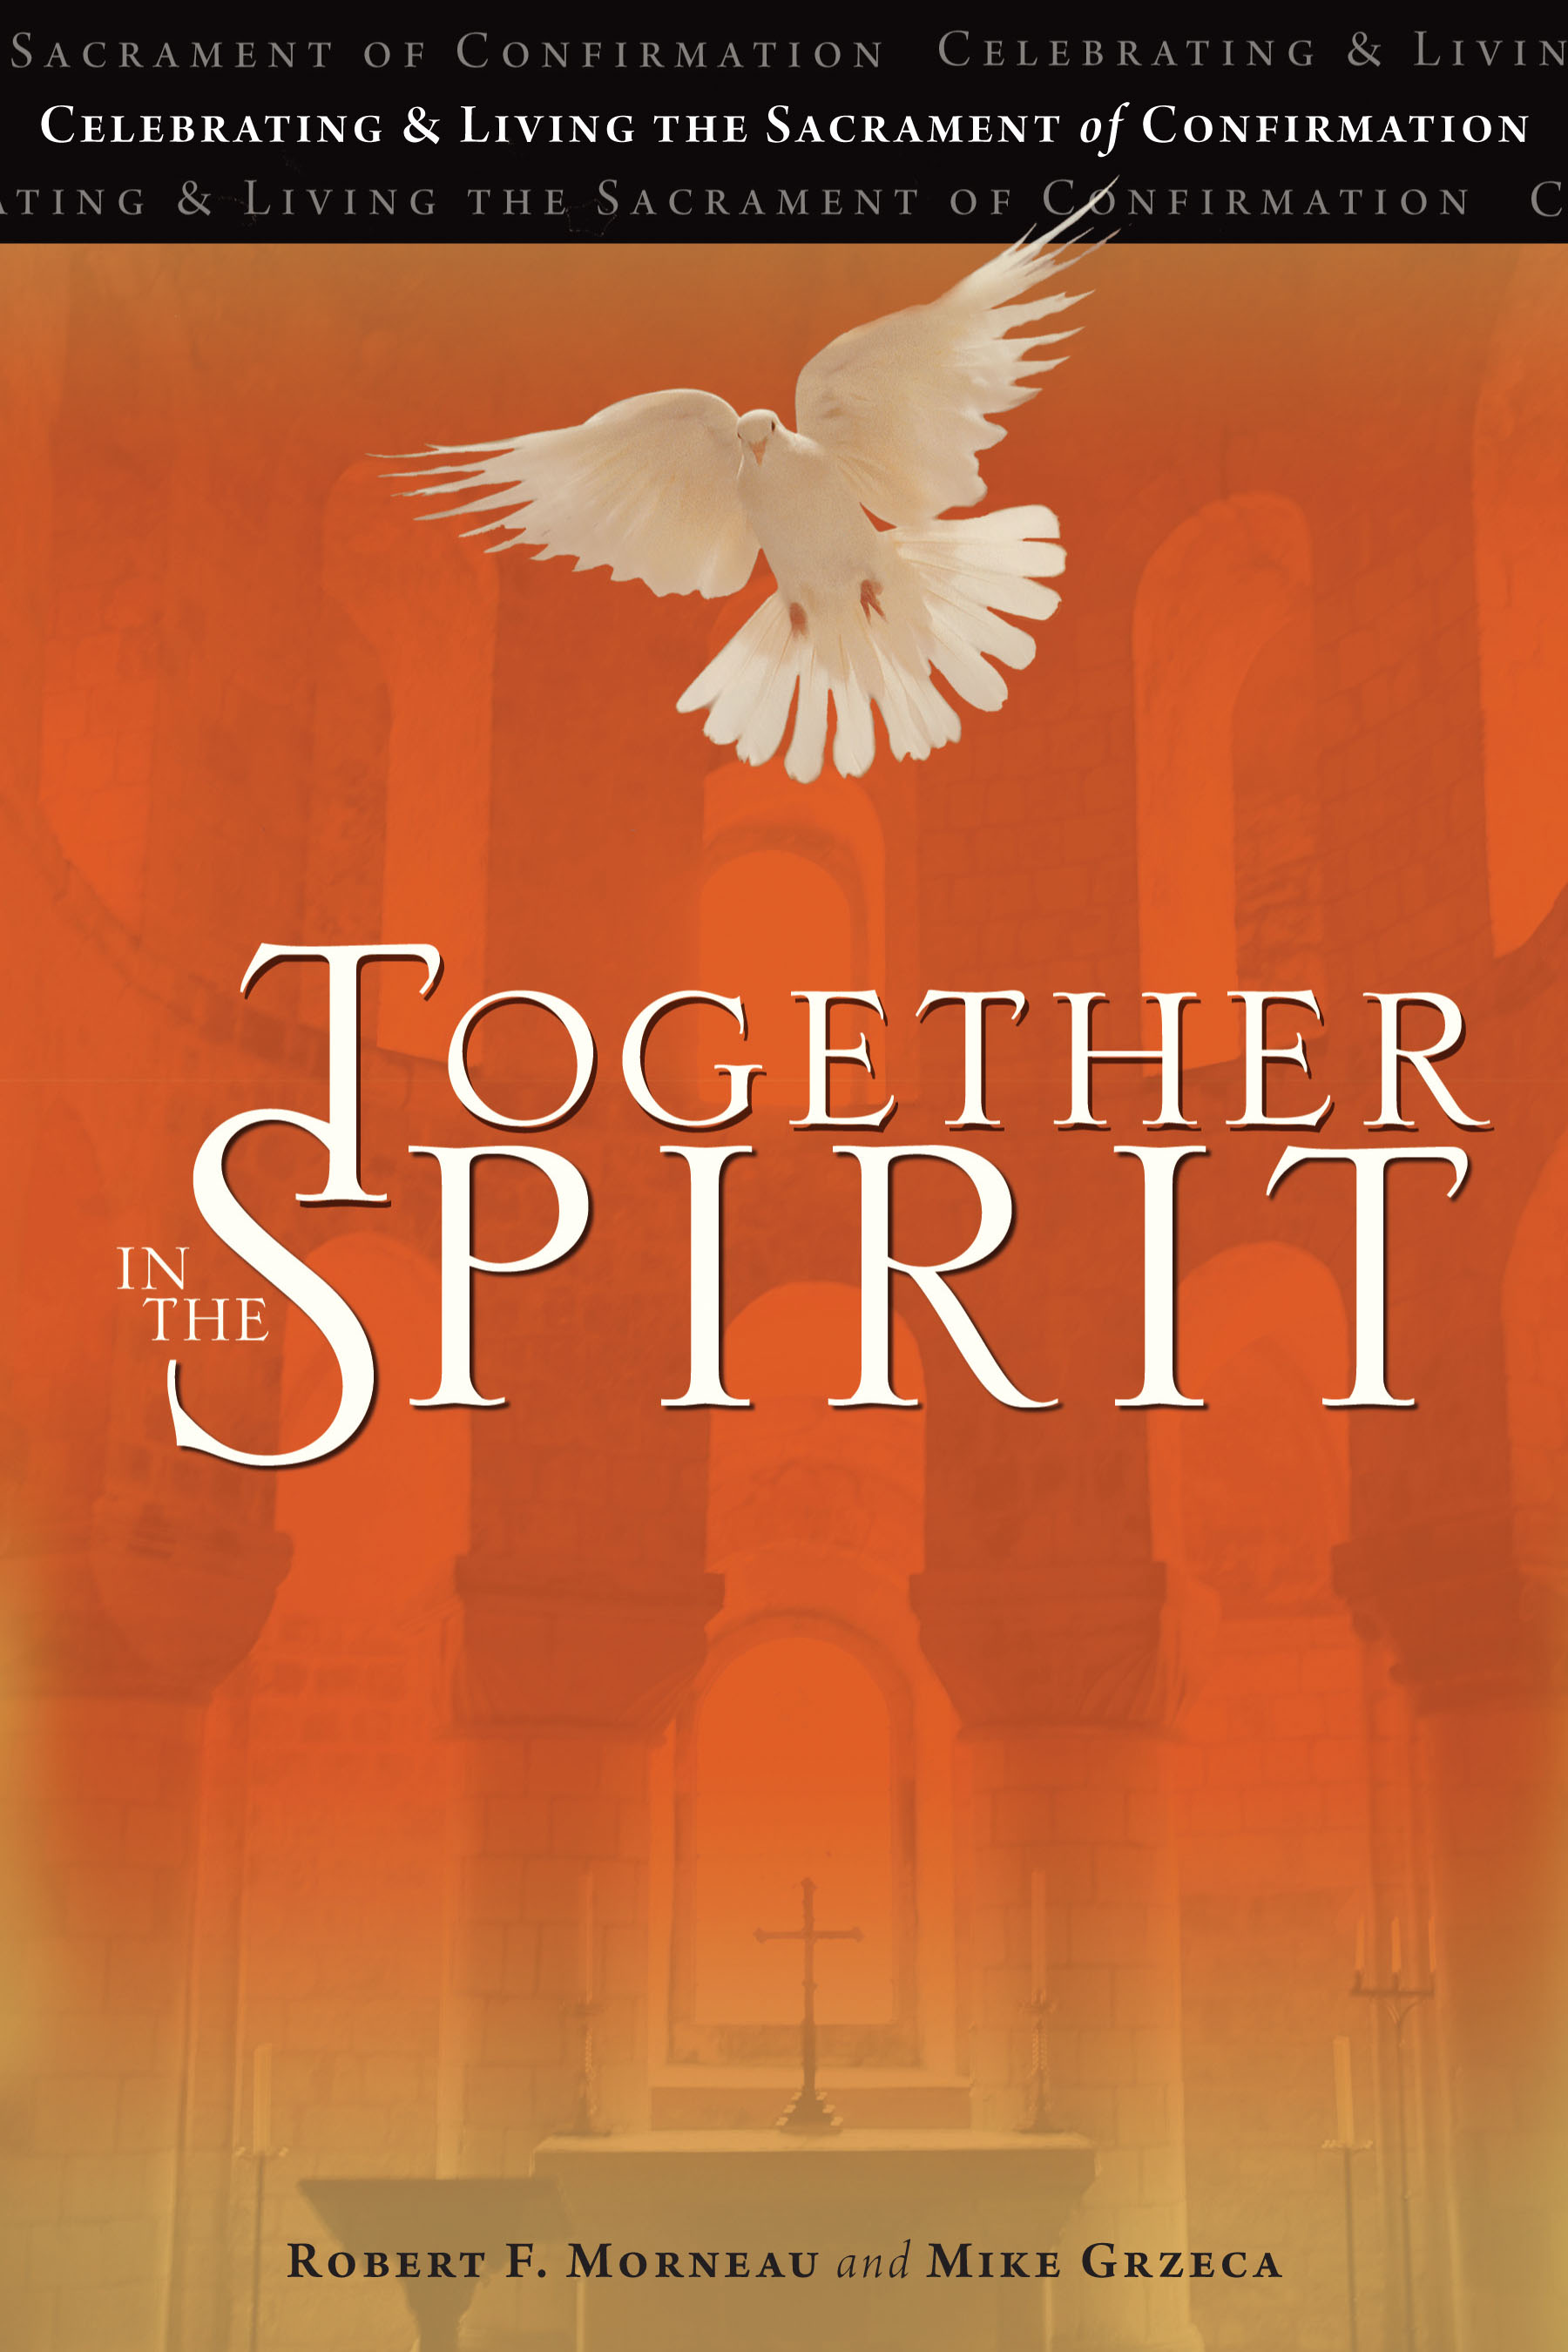 Together in the Spirit